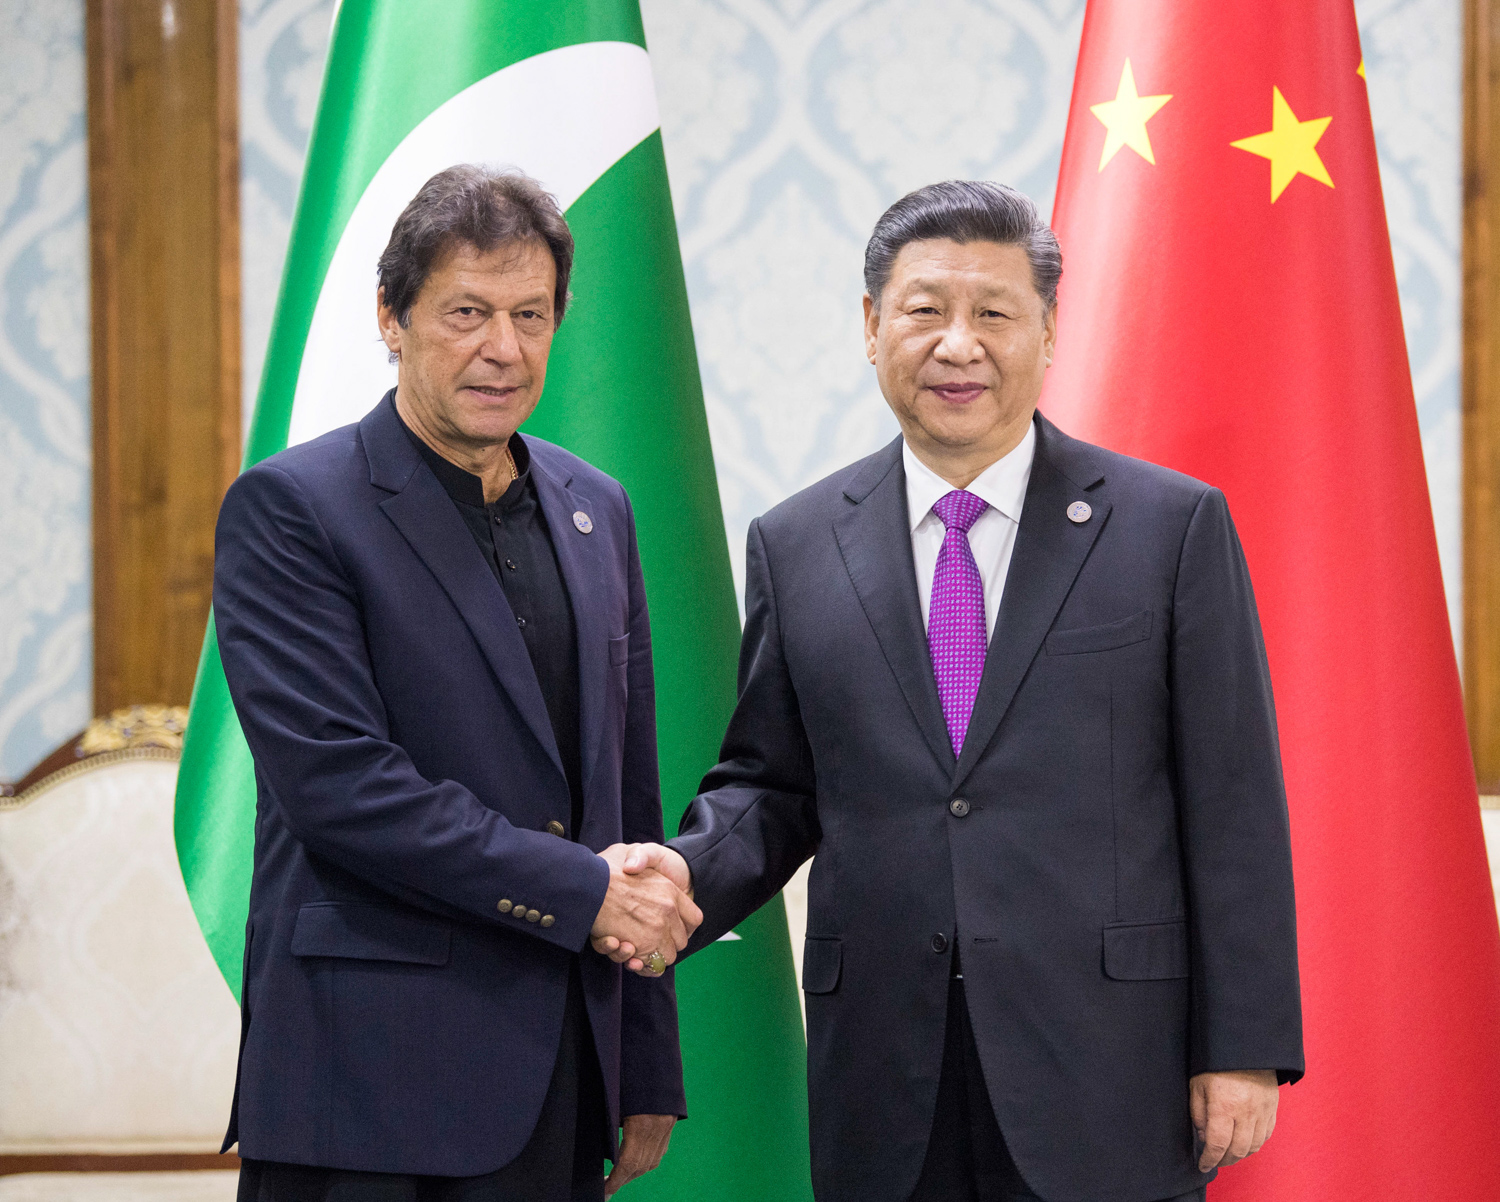 Xi calls for closer community with shared future between China, Pakistan